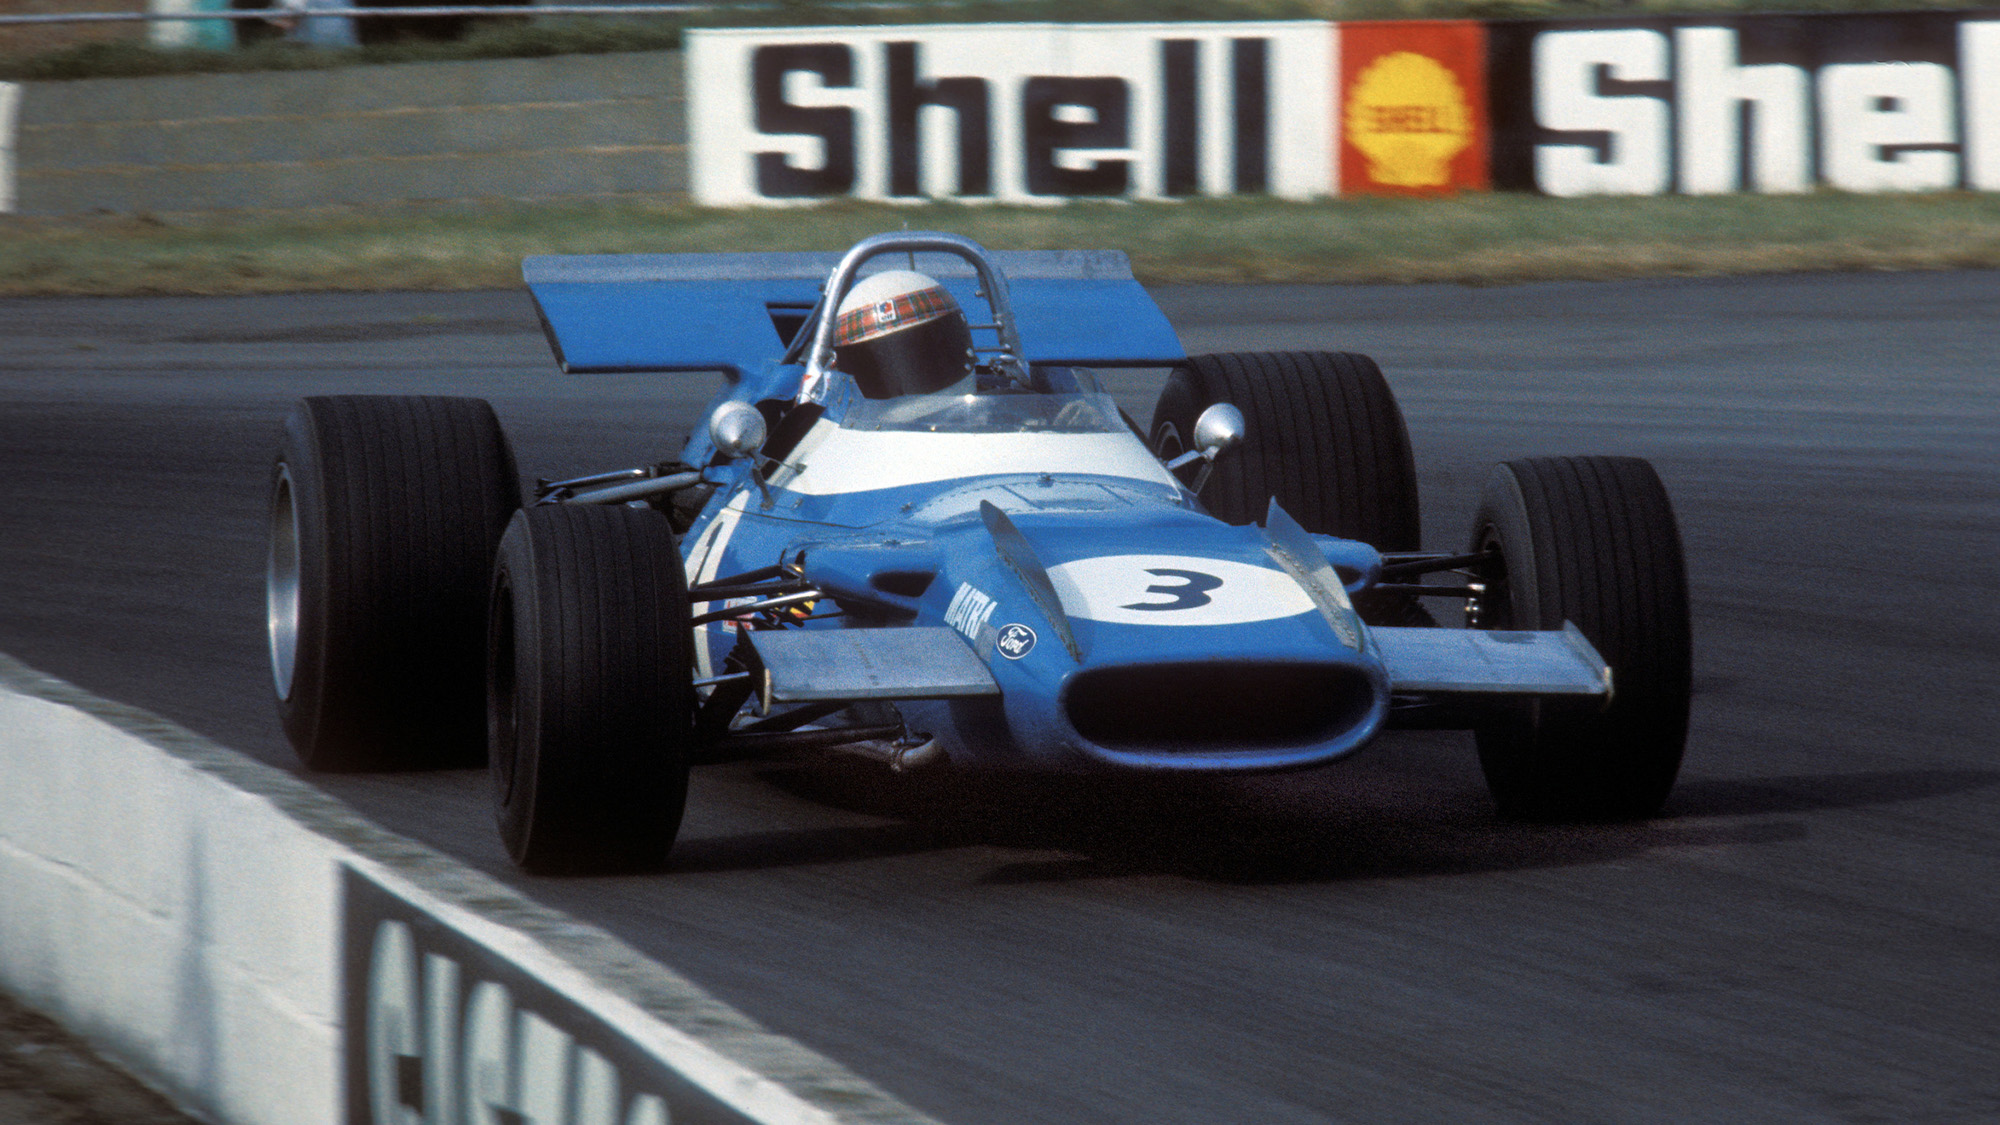 Jackie Stewart in his Tyrrell Matra Ford in the 1969 British Grand Prix at Silverstone